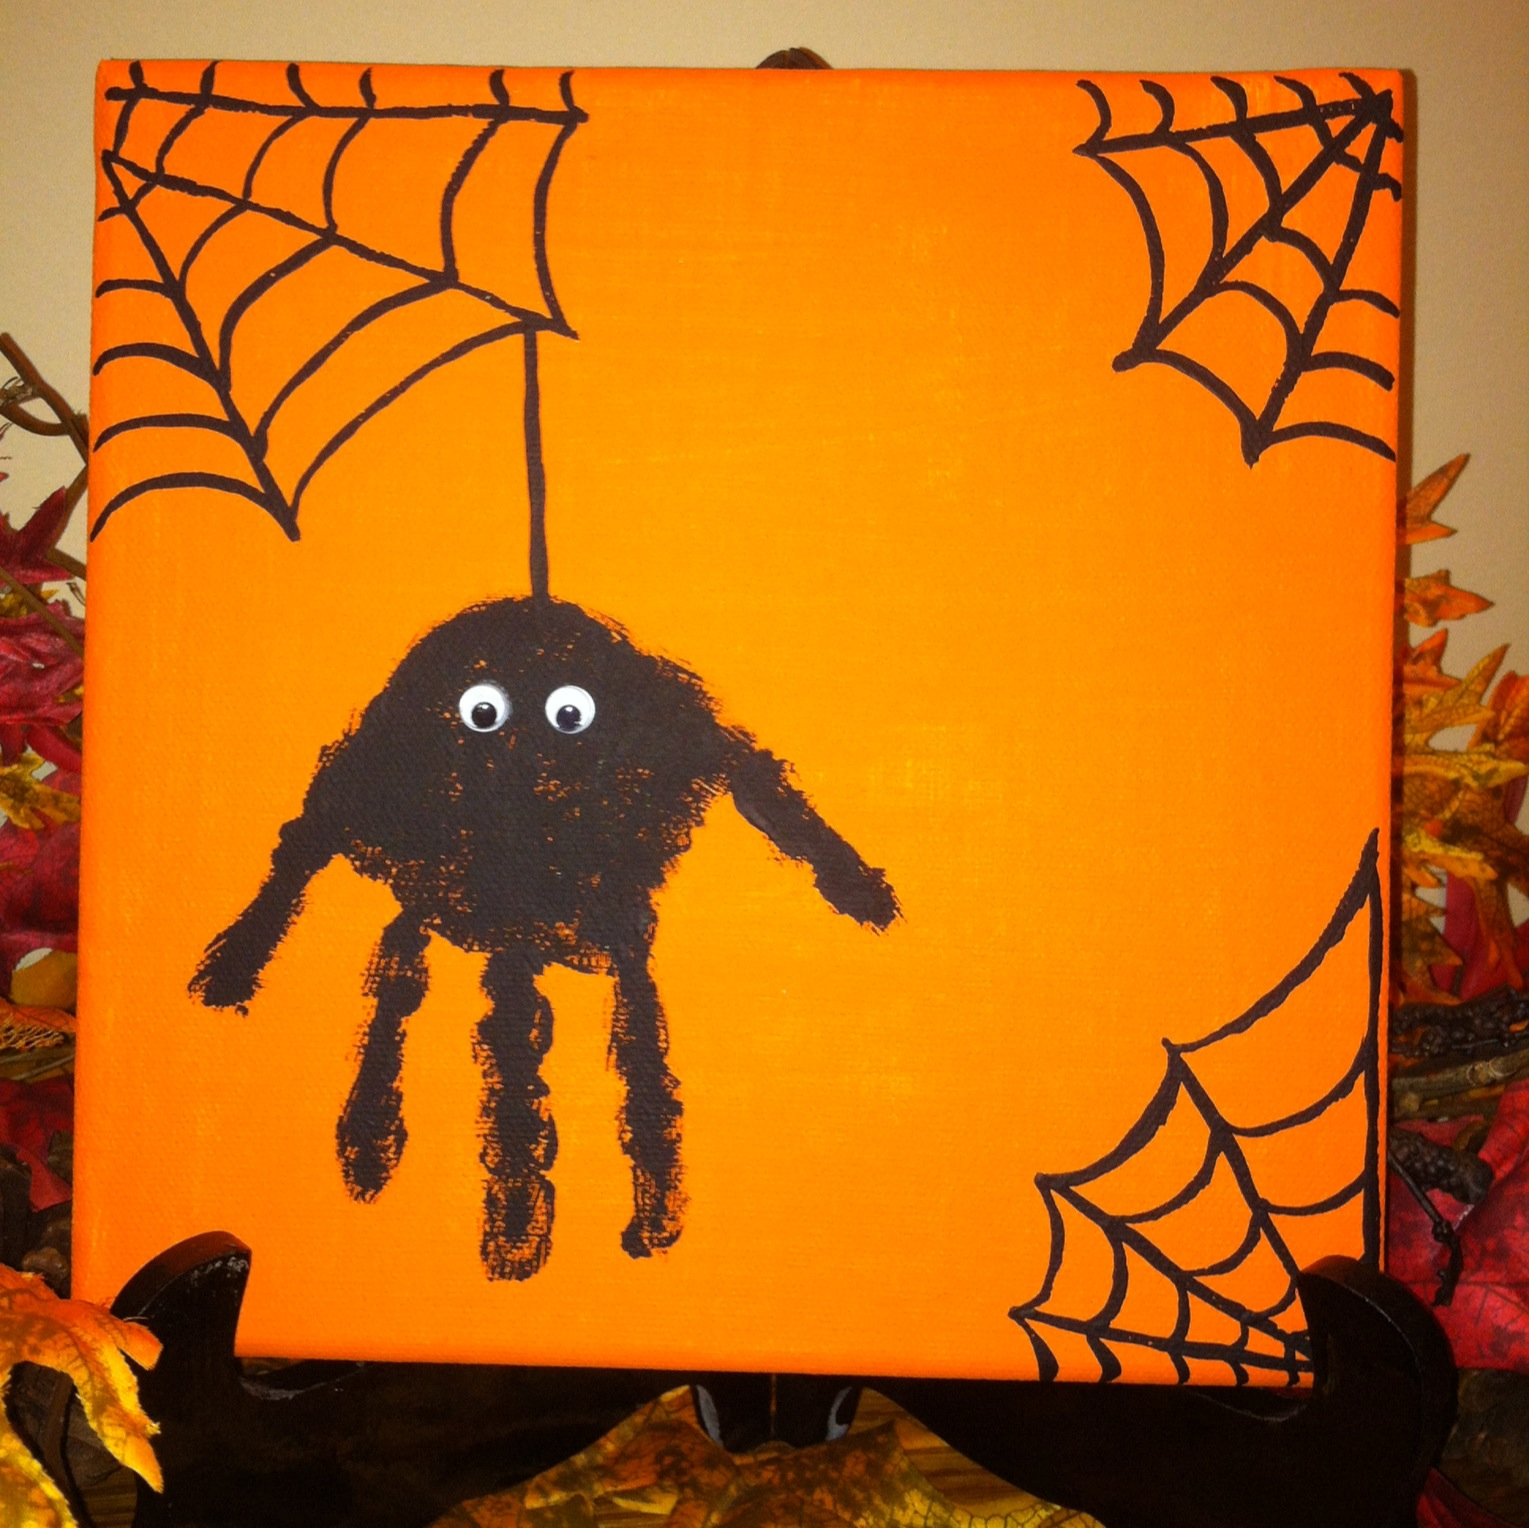 art and craft halloween ideas the chop haus project 5862